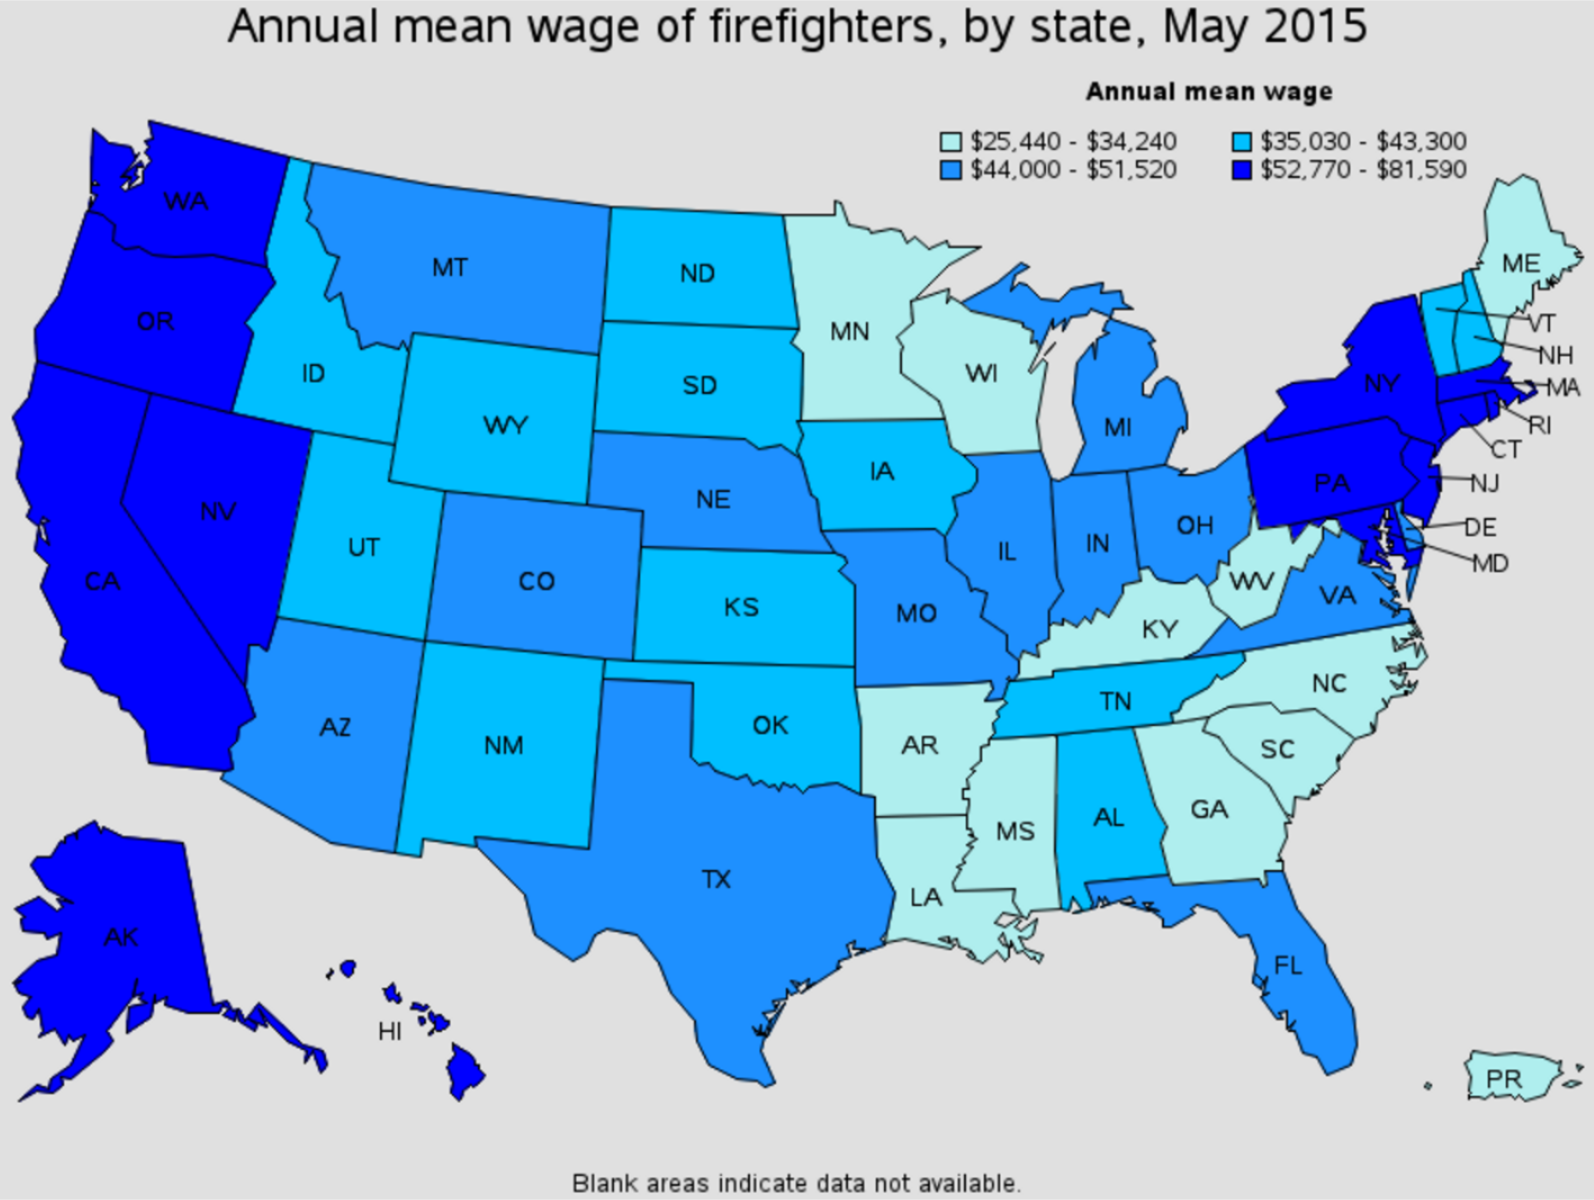 firefighter average salary by state Woods Cross Utah